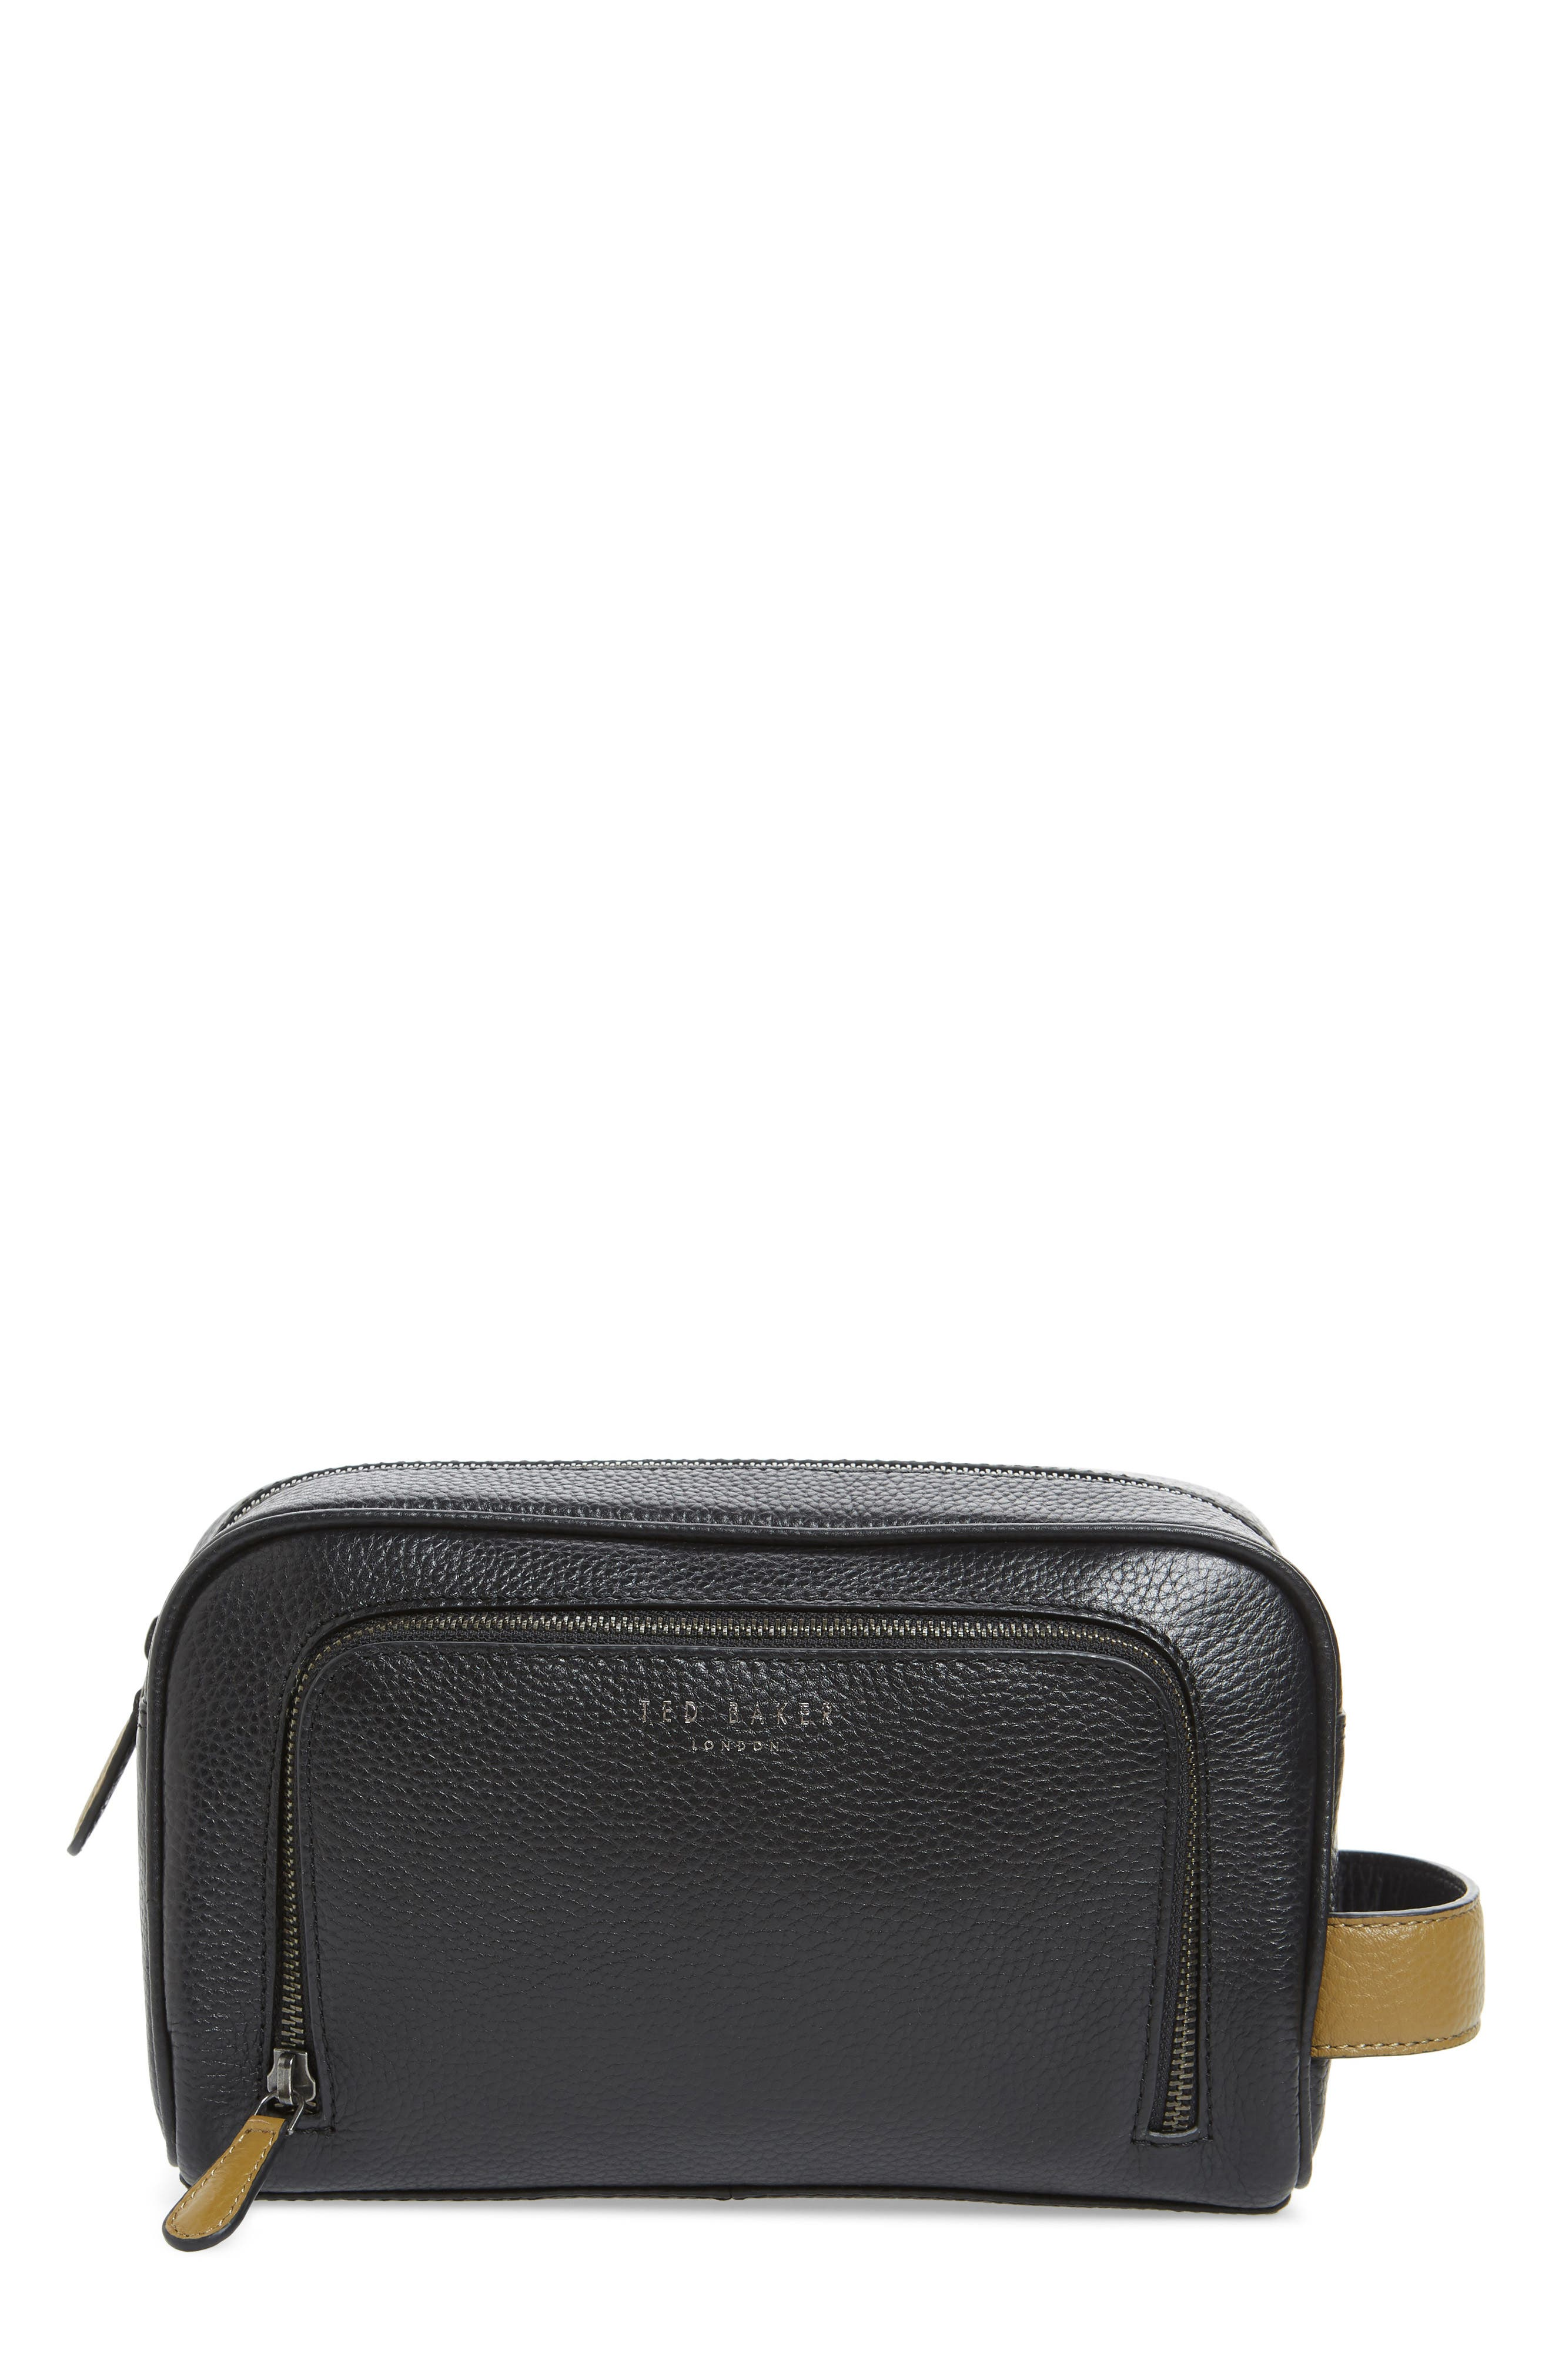 TED BAKER LONDON Soaps Leather Dopp Kit, Main, color, 001